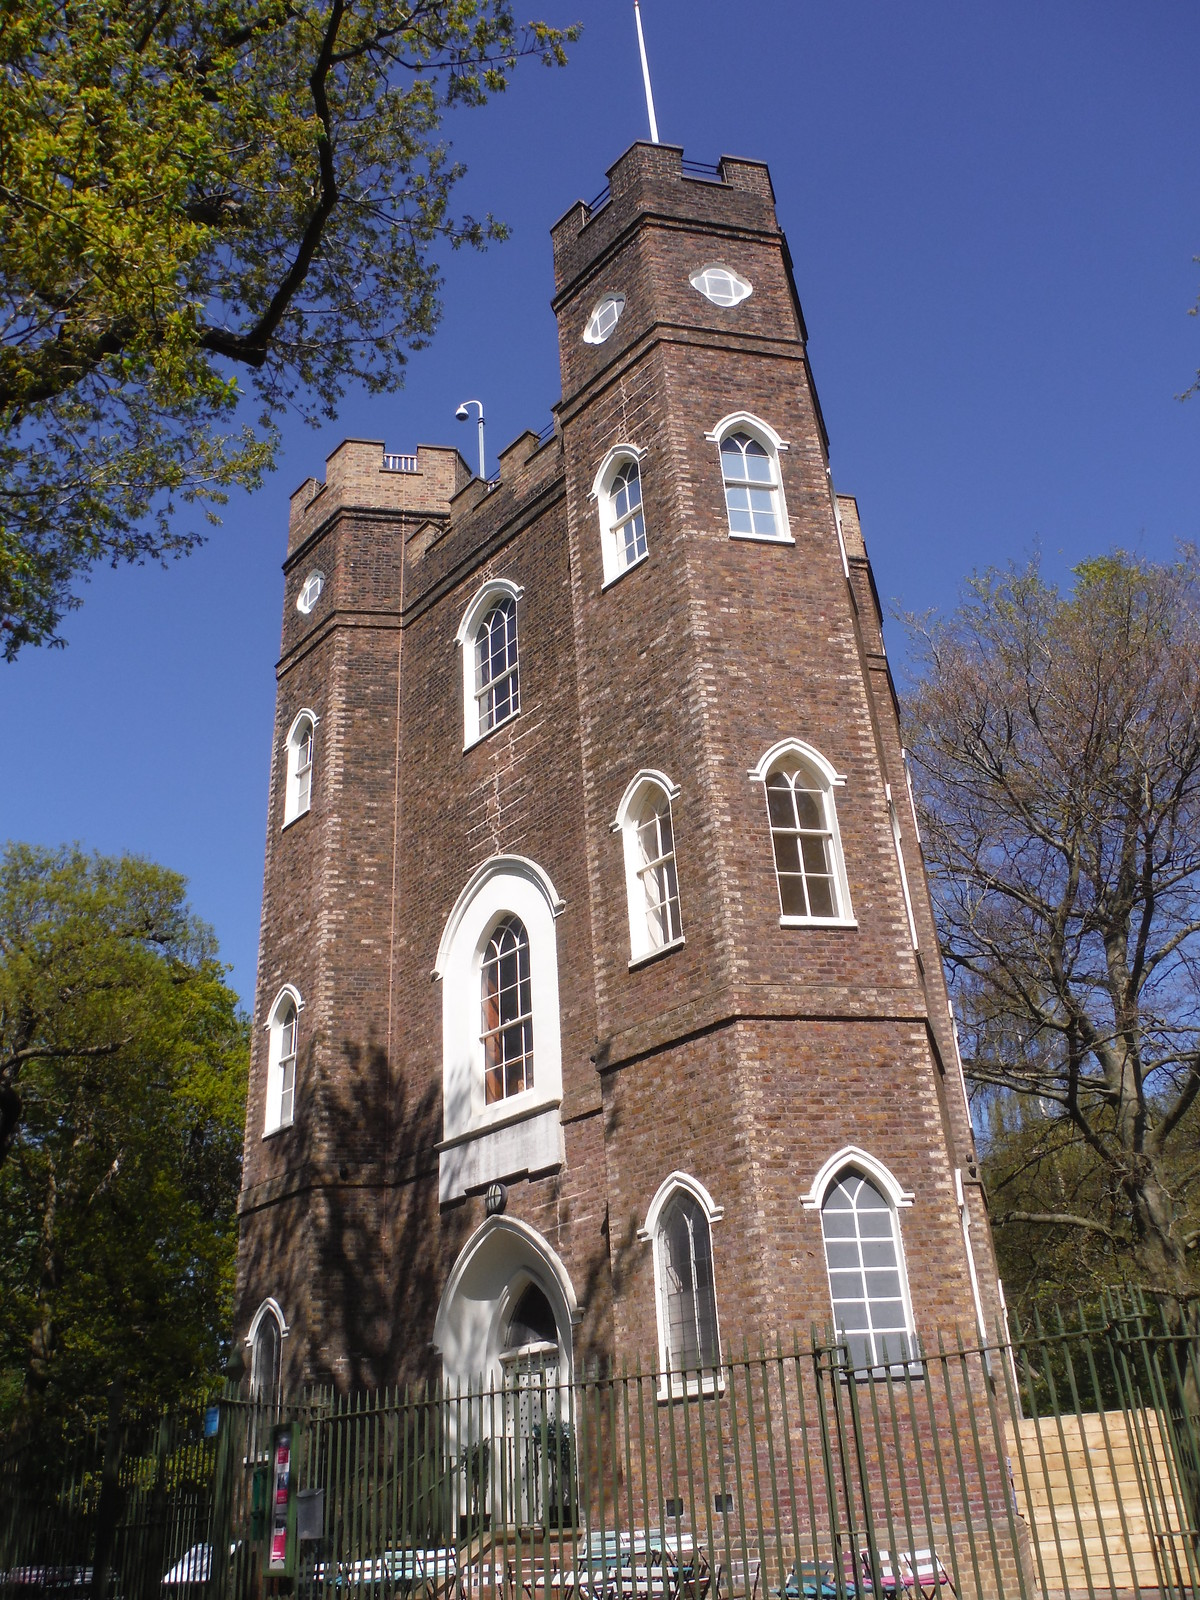 Severndroog Castle without outdoor seating of tearoom (Covid-19 lockdown) SWC Short Walk 44 - Oxleas Wood and Shooters Hill (Falconwood Circular)